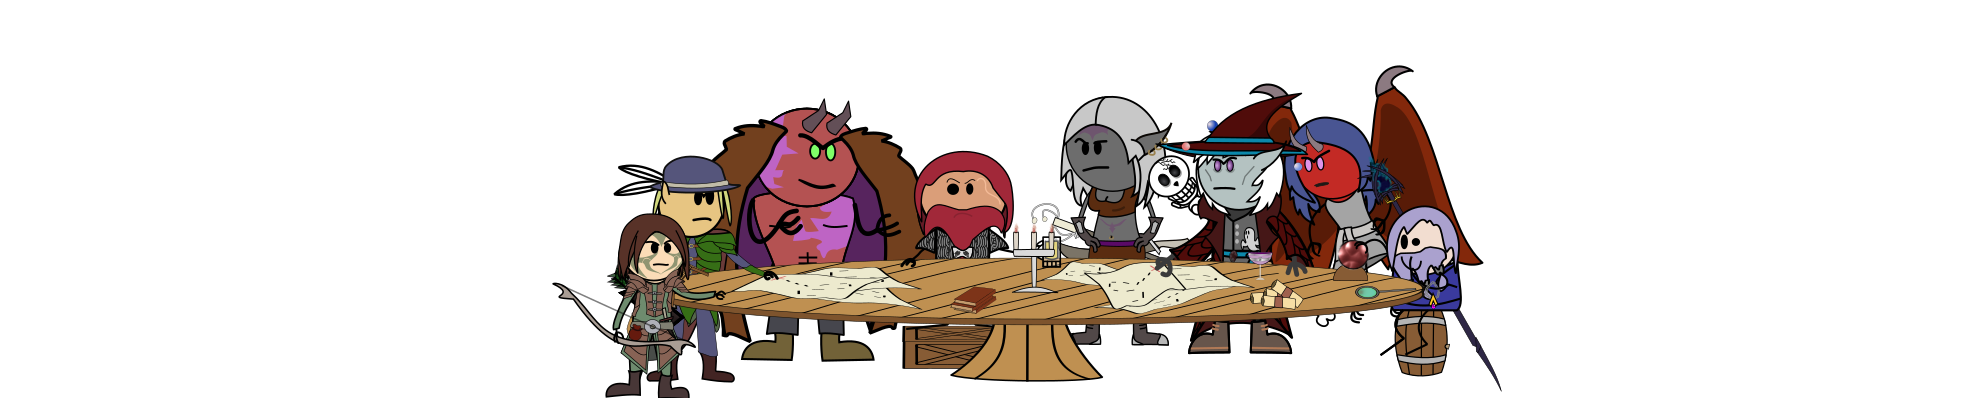 Song of sadness banner table